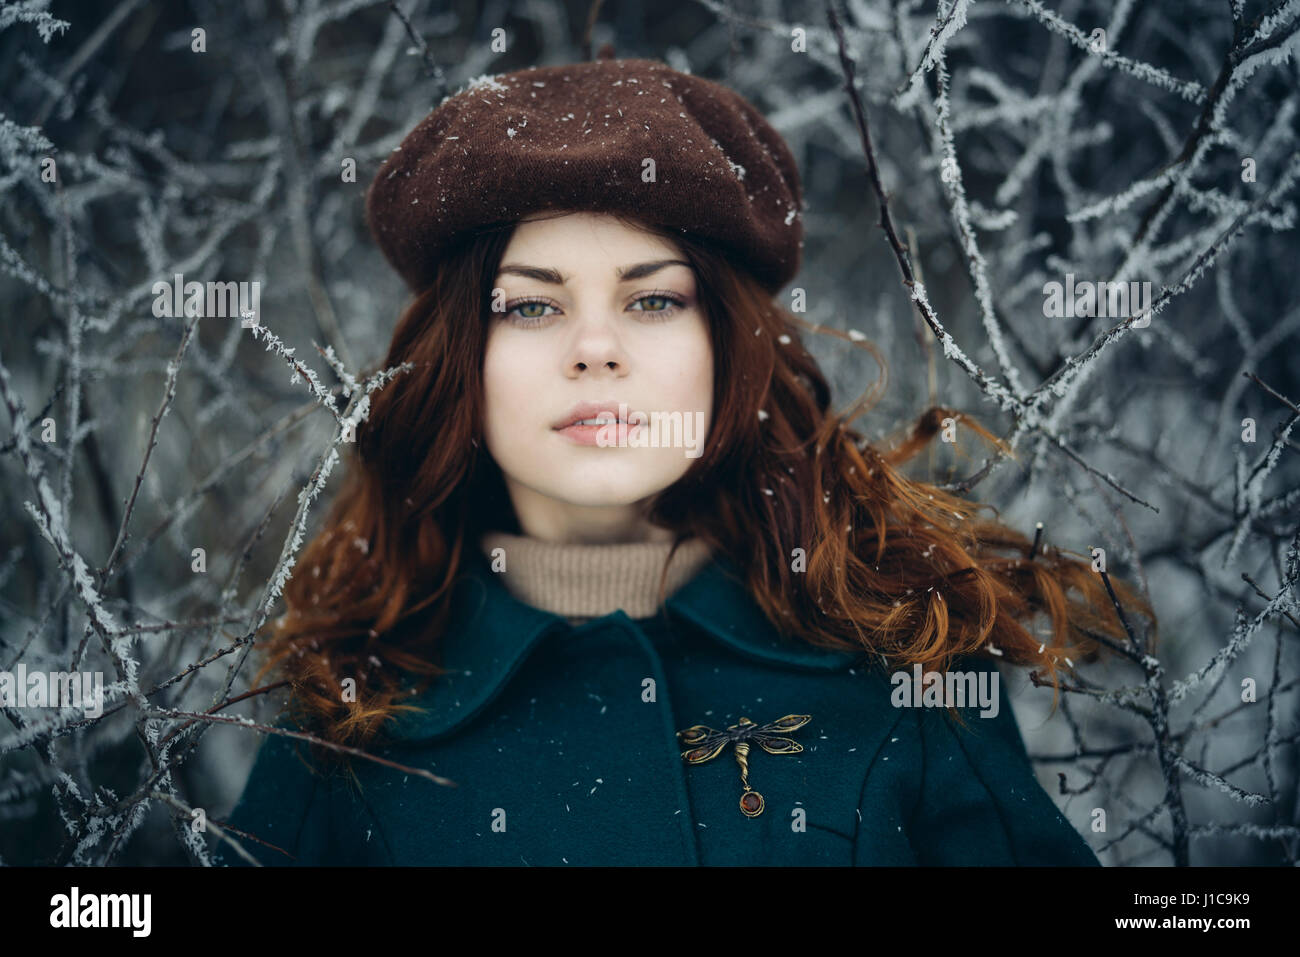 Serious Caucasian woman near icy branches - Stock Image